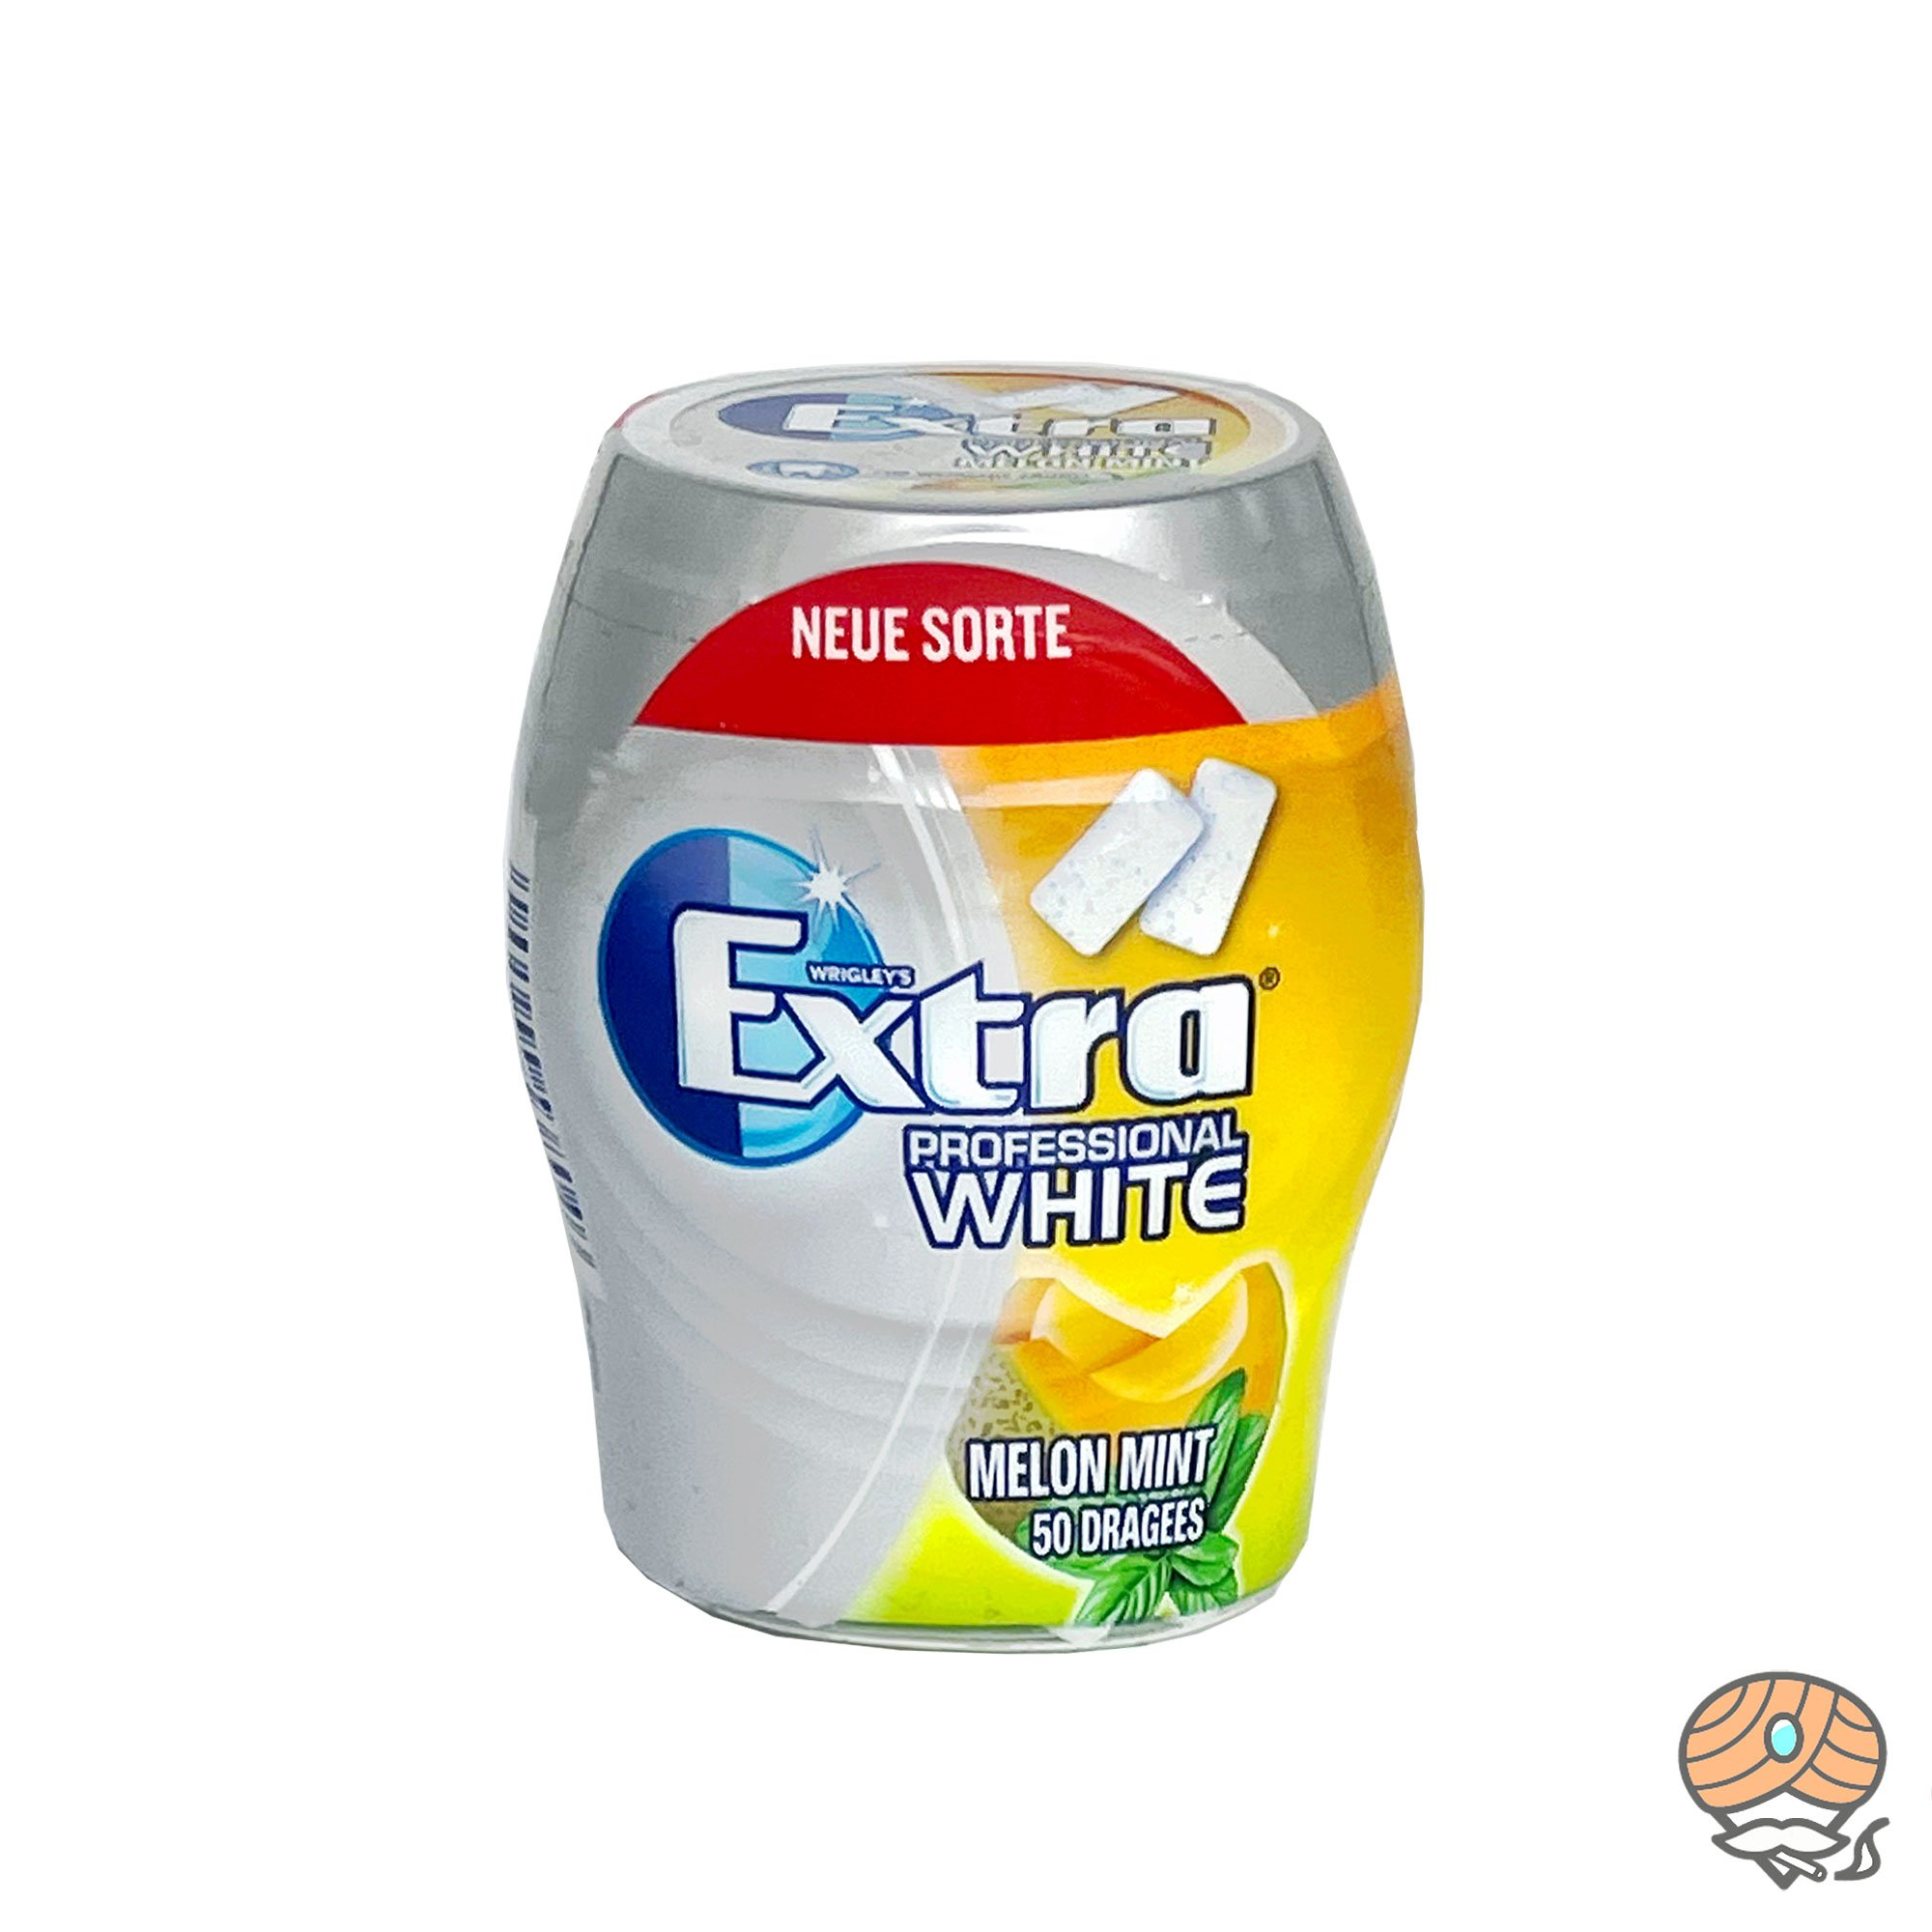 Wrigley`s Extra Professional White Melon Mint Dose 50 Dragees